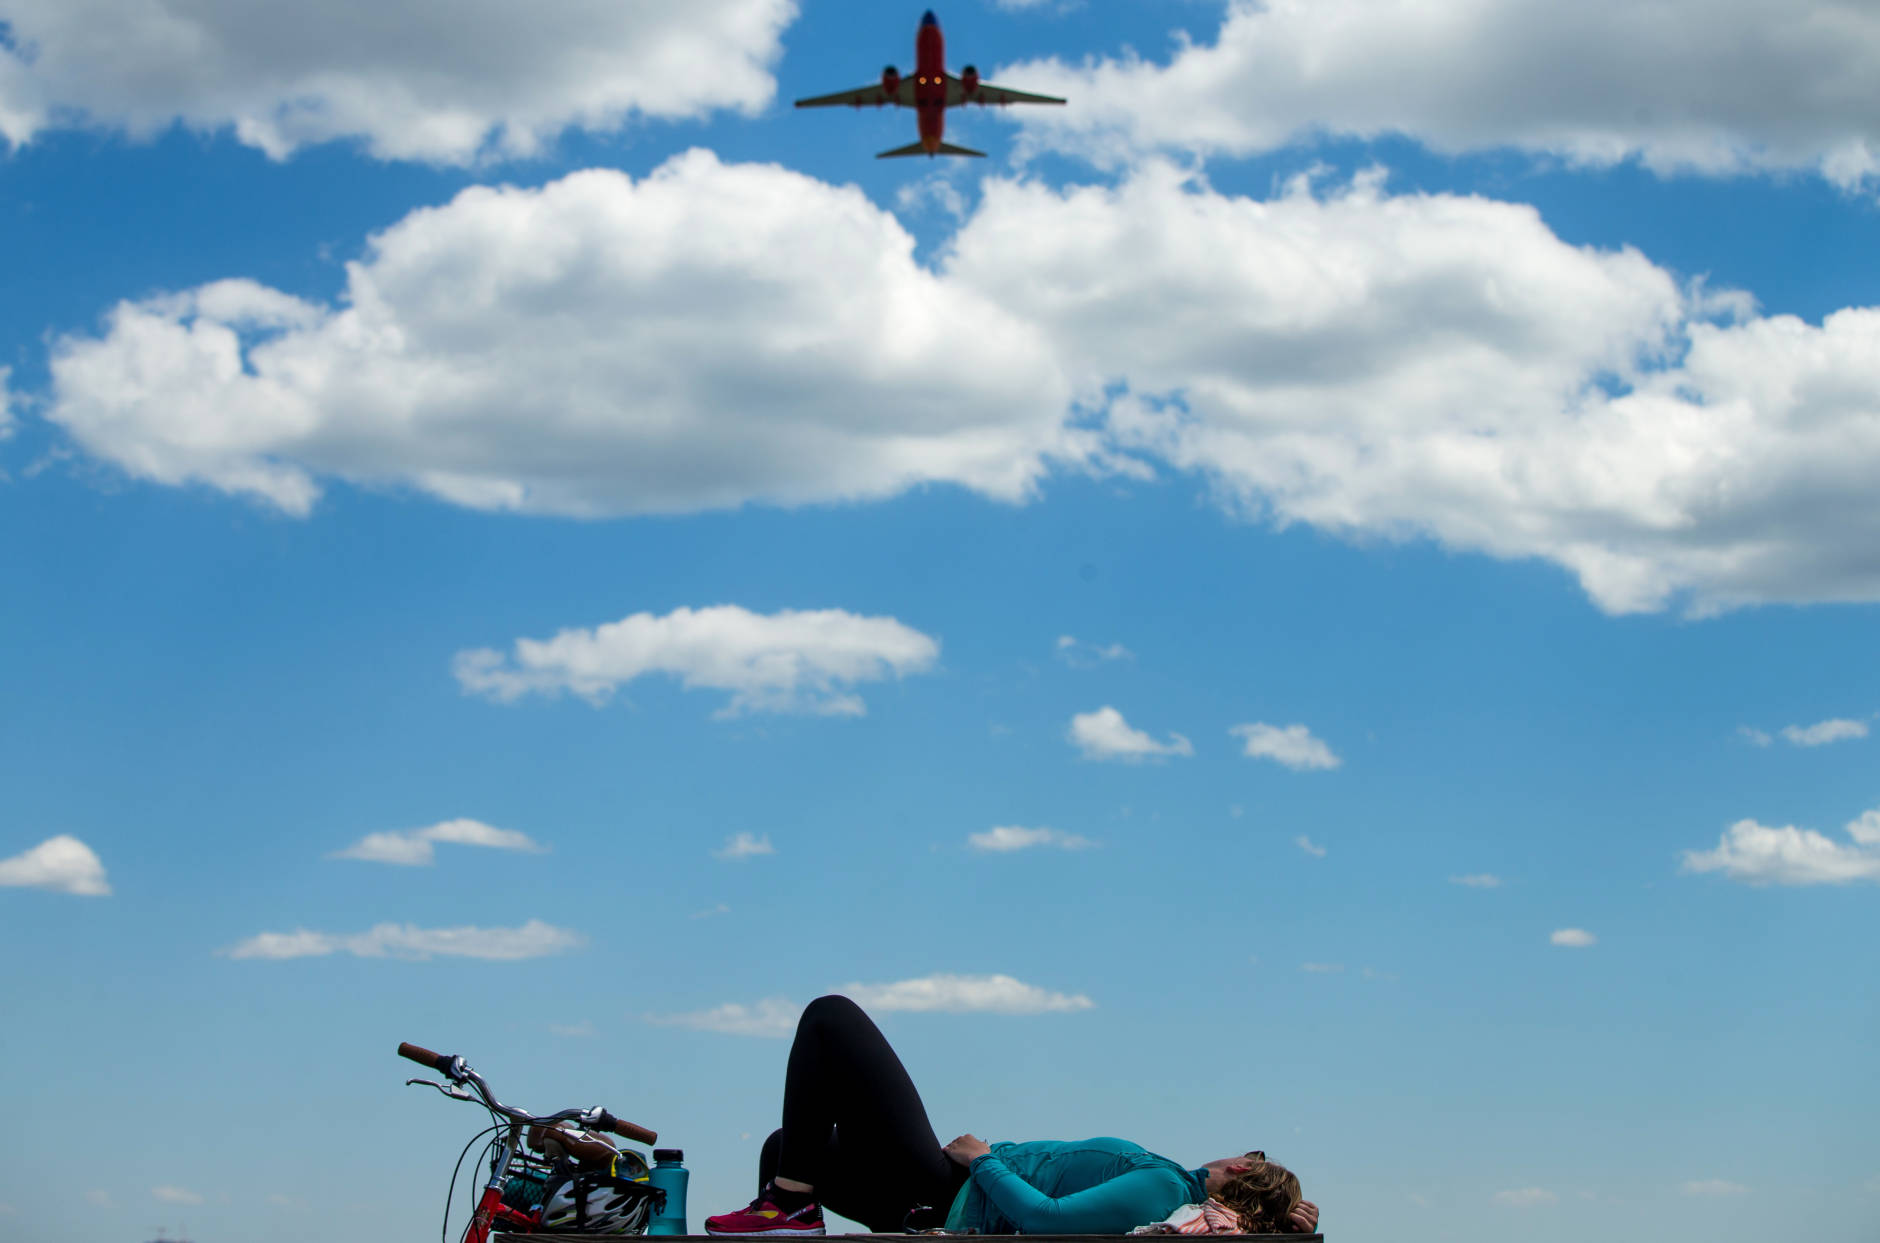 A plane takes off from Washington's Ronald Reagan National Airport as Julia Hurley of Washington relaxes on a picnic table at Gravelly Point Park in Arlington, Va., Wednesday, June 8, 2016, after bicycling to Mt. Vernon and back. (AP Photo/Andrew Harnik)